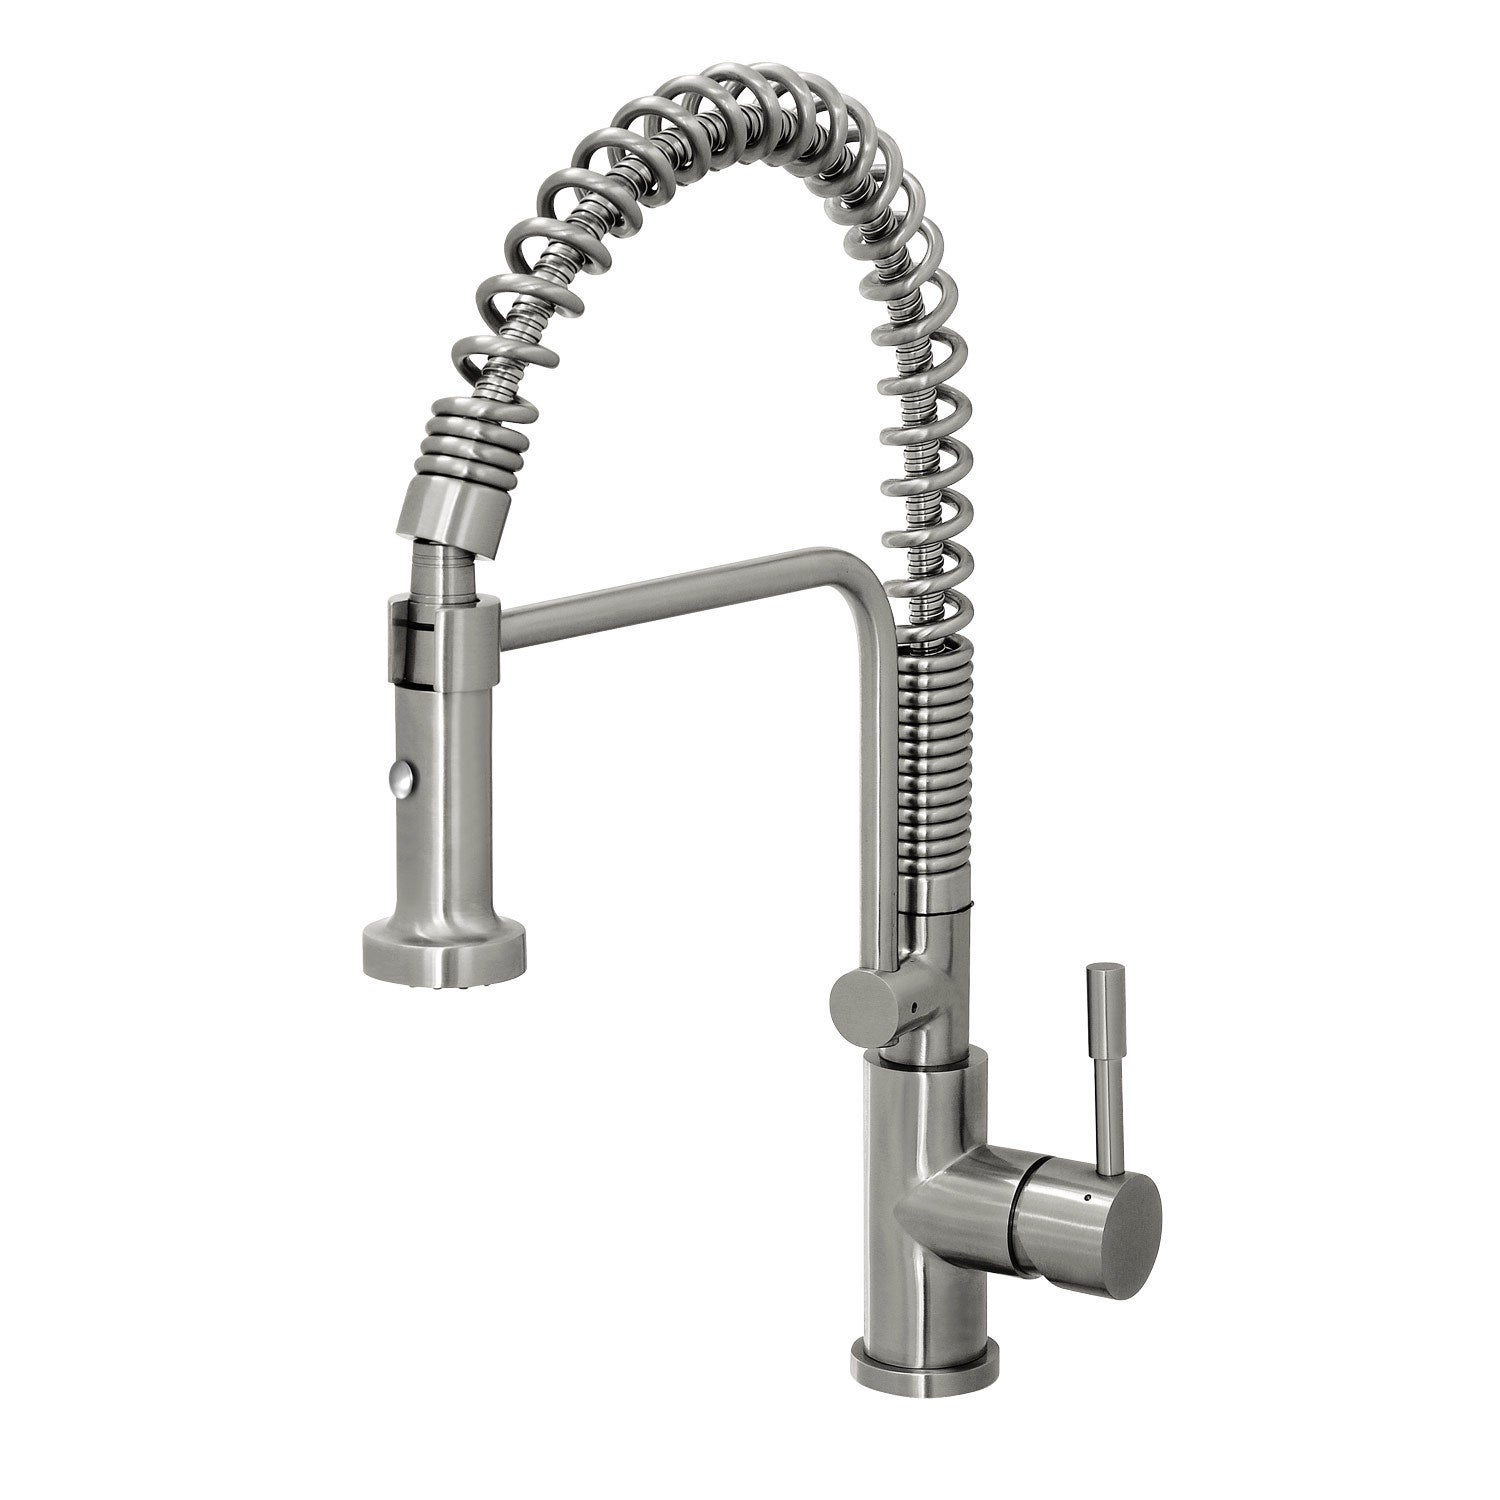 GEYSER Stainless Steel Commercial-Style Coiled Spring Kit...